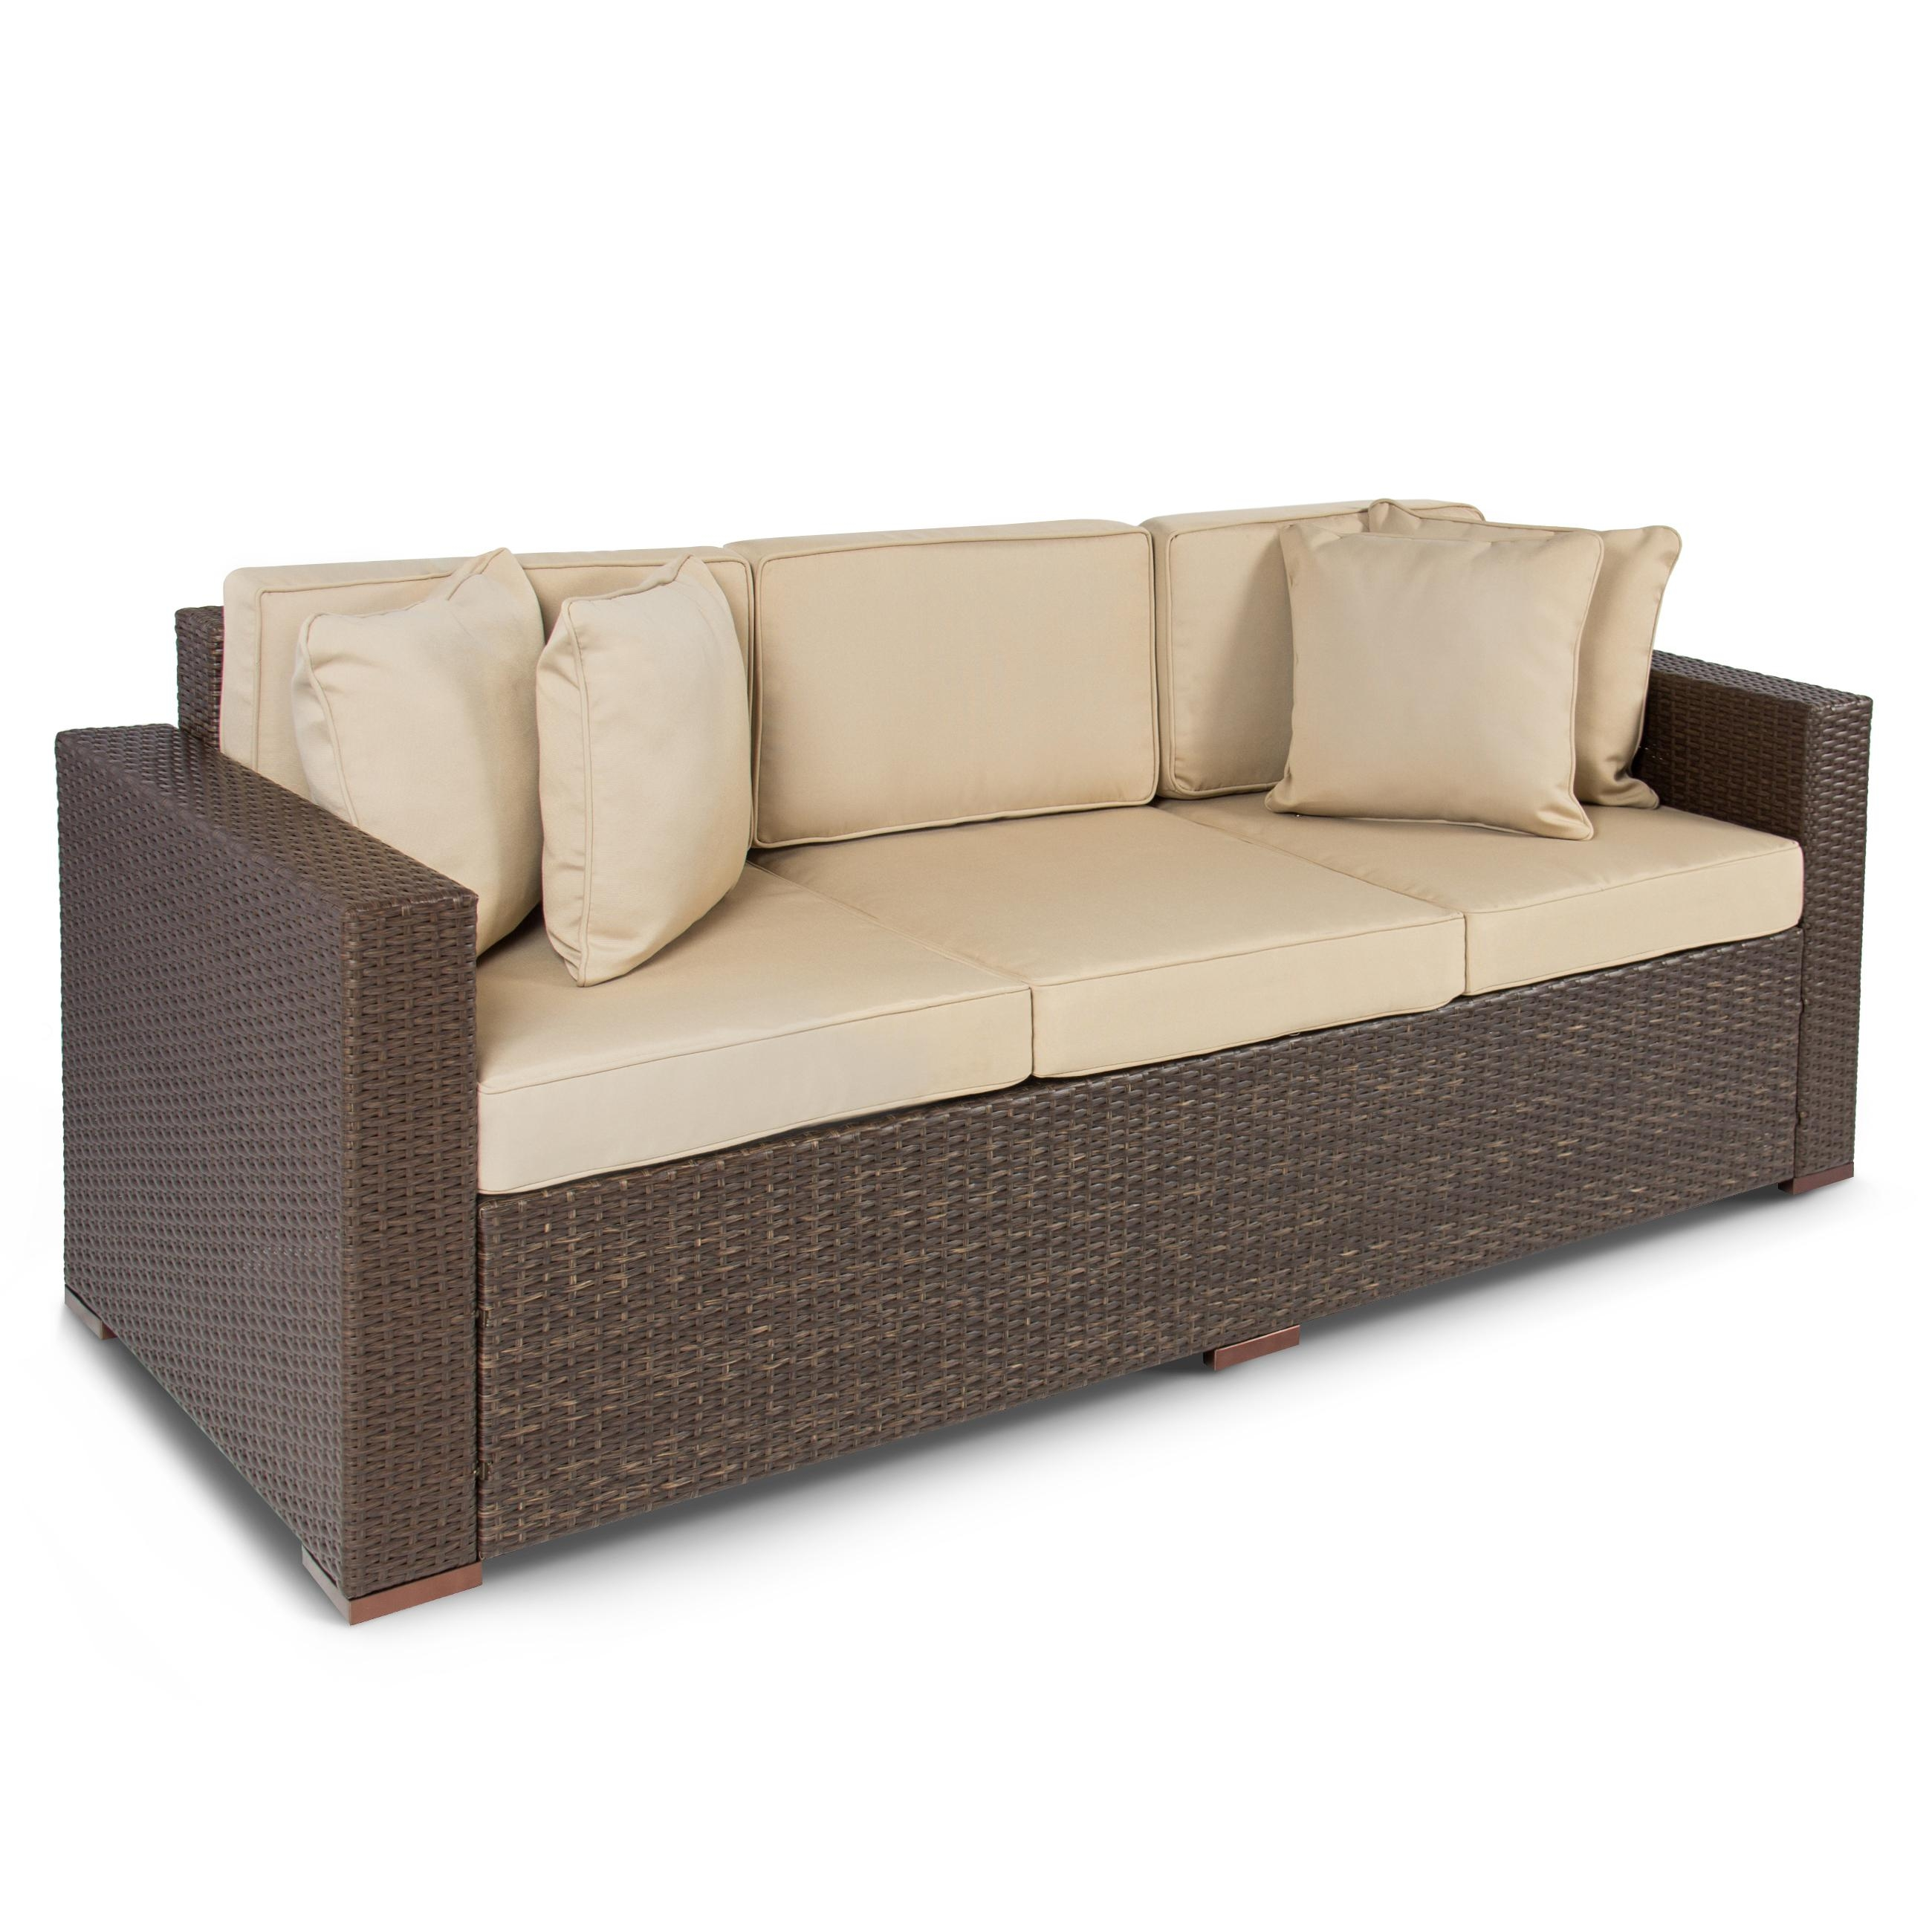 Outdoor Wicker Patio Furniture Sofa 3 Seater Luxury Comfort Brown Regarding Comfortable Sofas And Chairs (View 19 of 20)